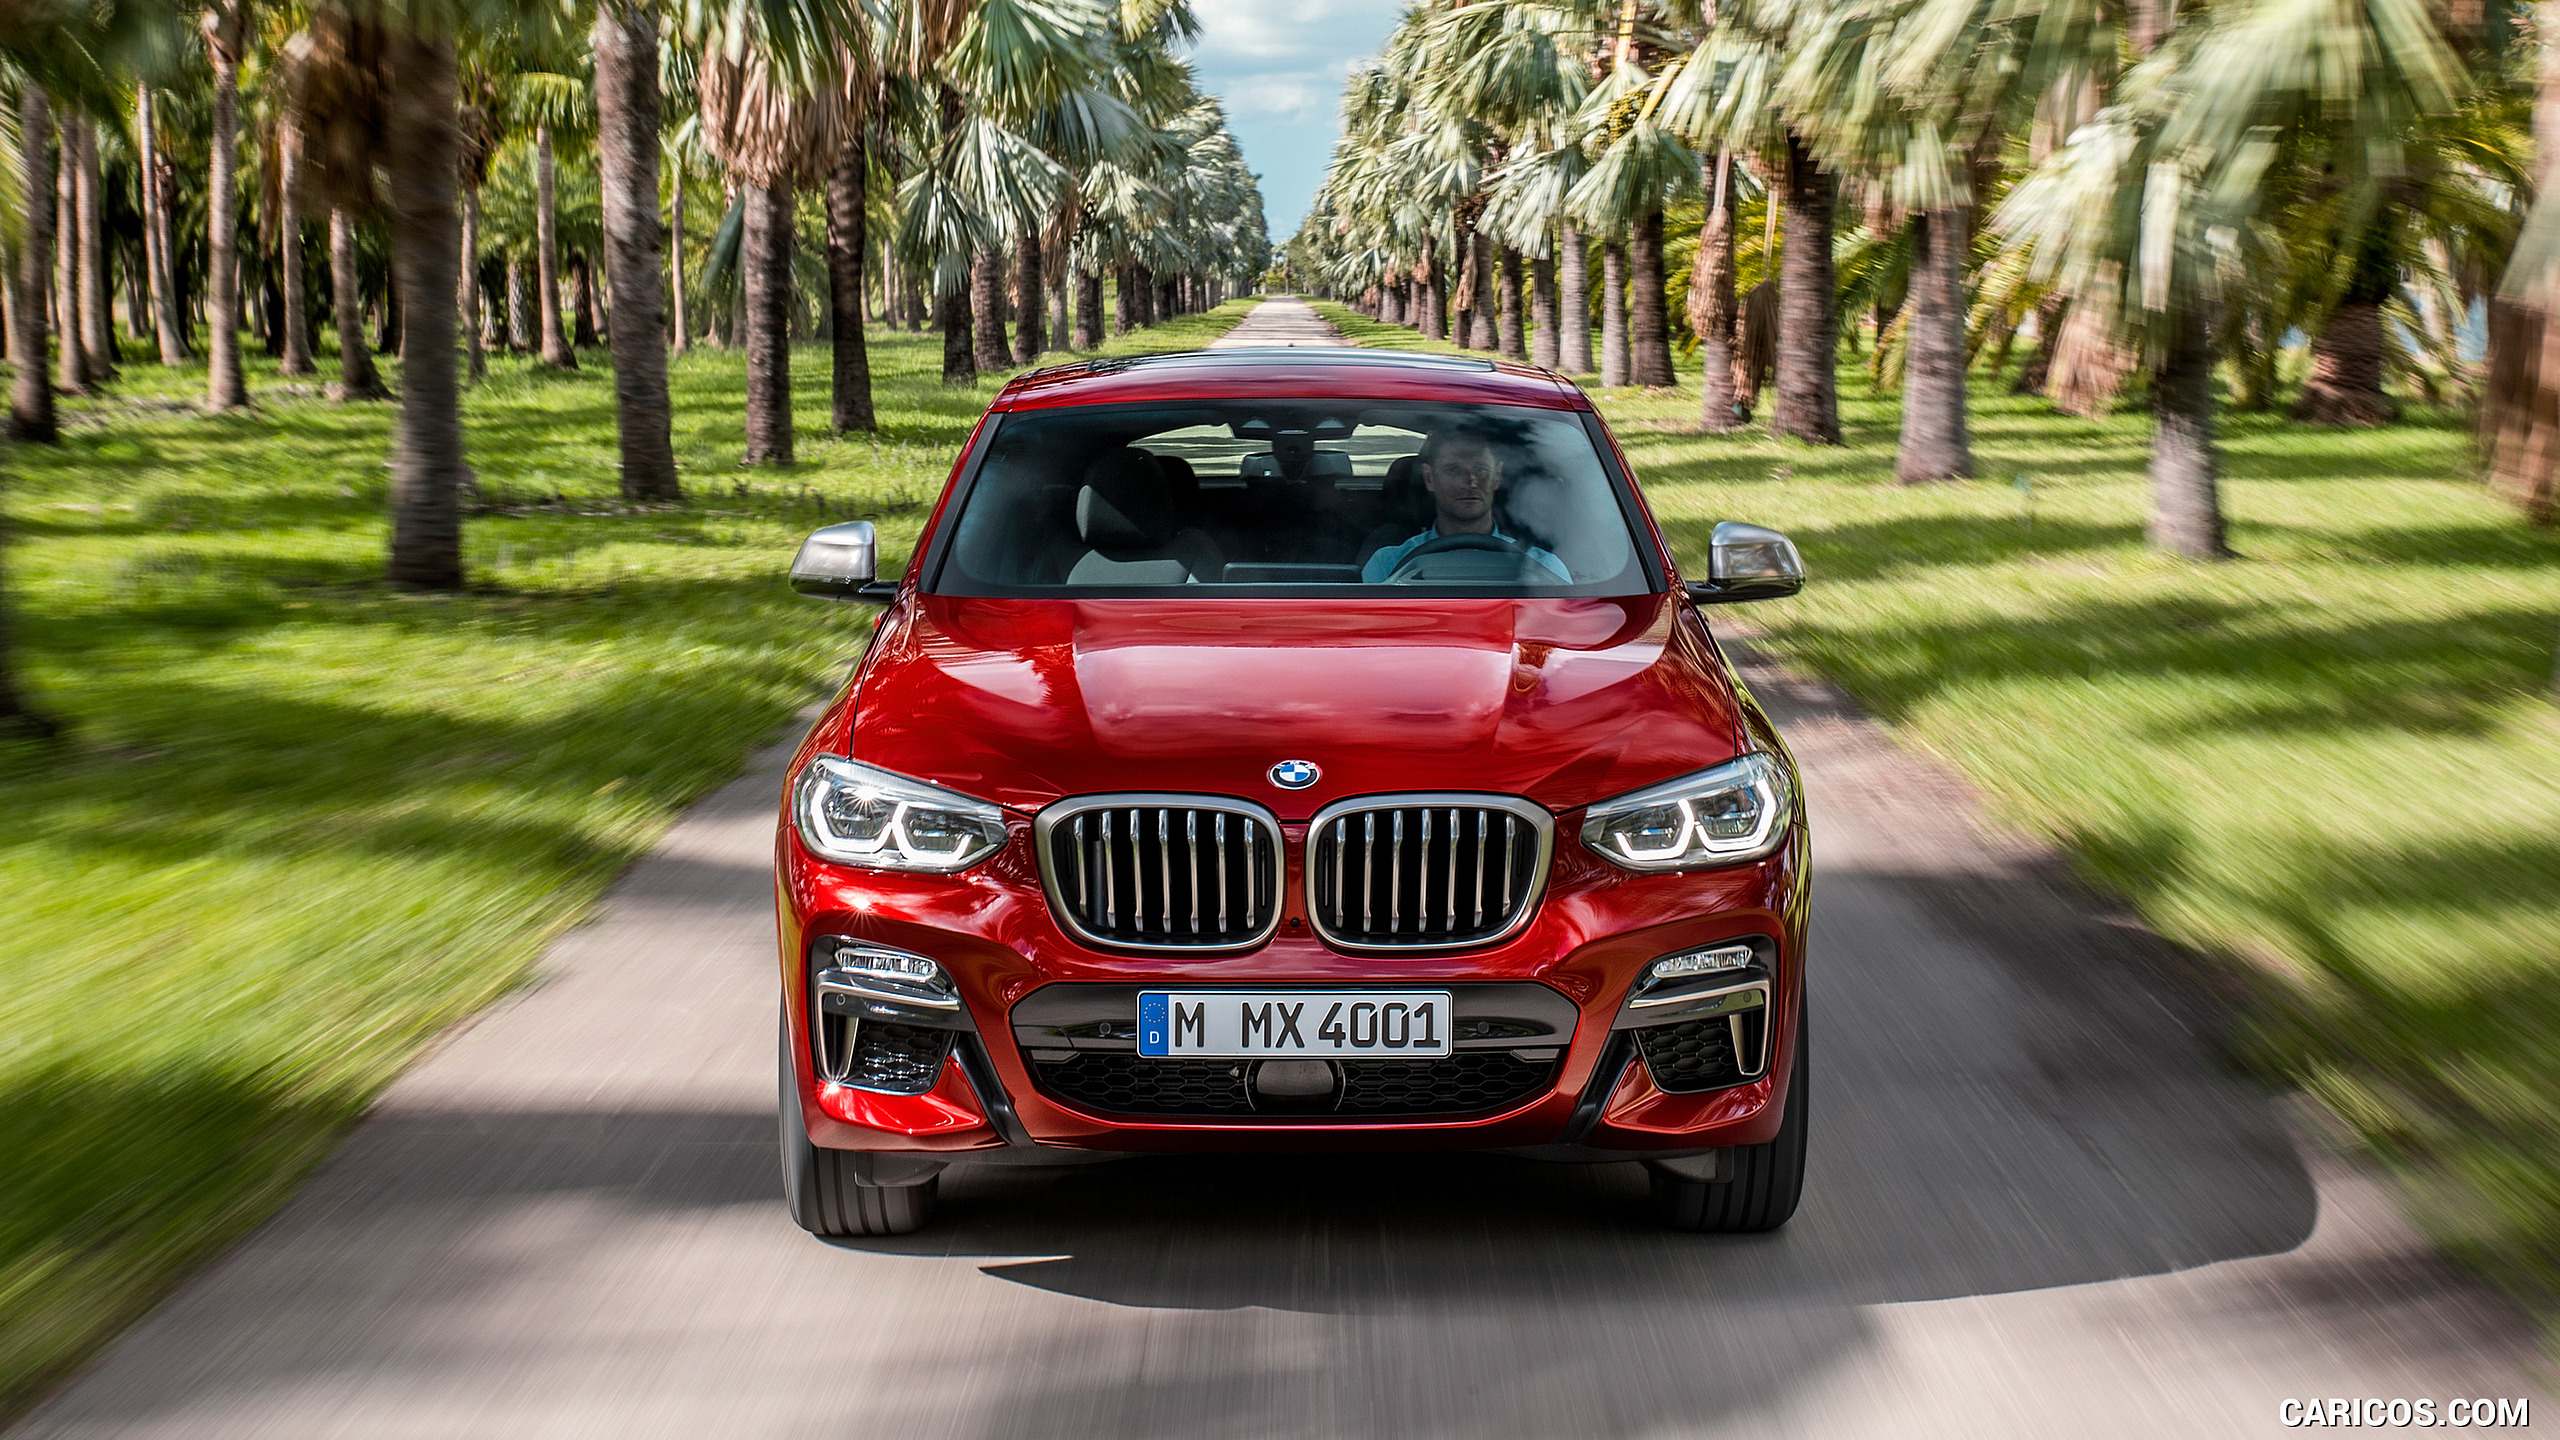 2560x1440 - BMW X4 Wallpapers 30